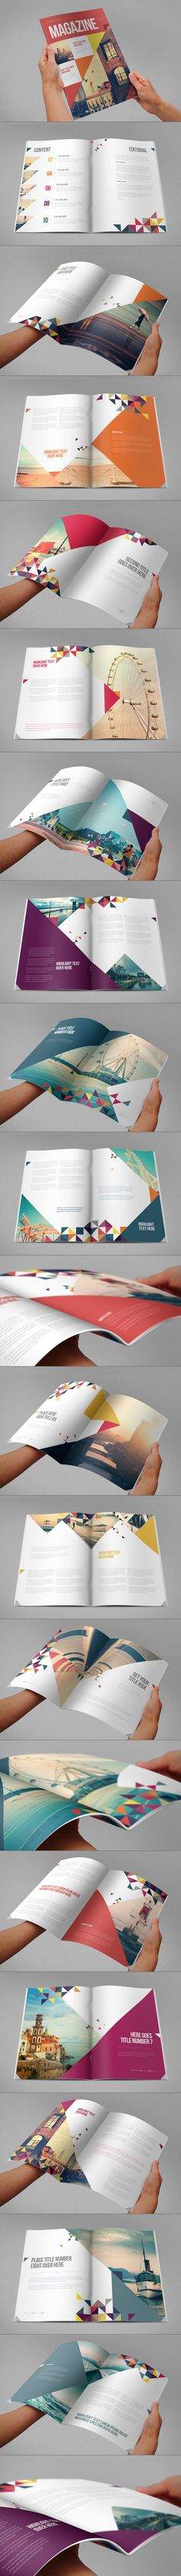 Modern Triangles Magazine by Abra Design, via Behance